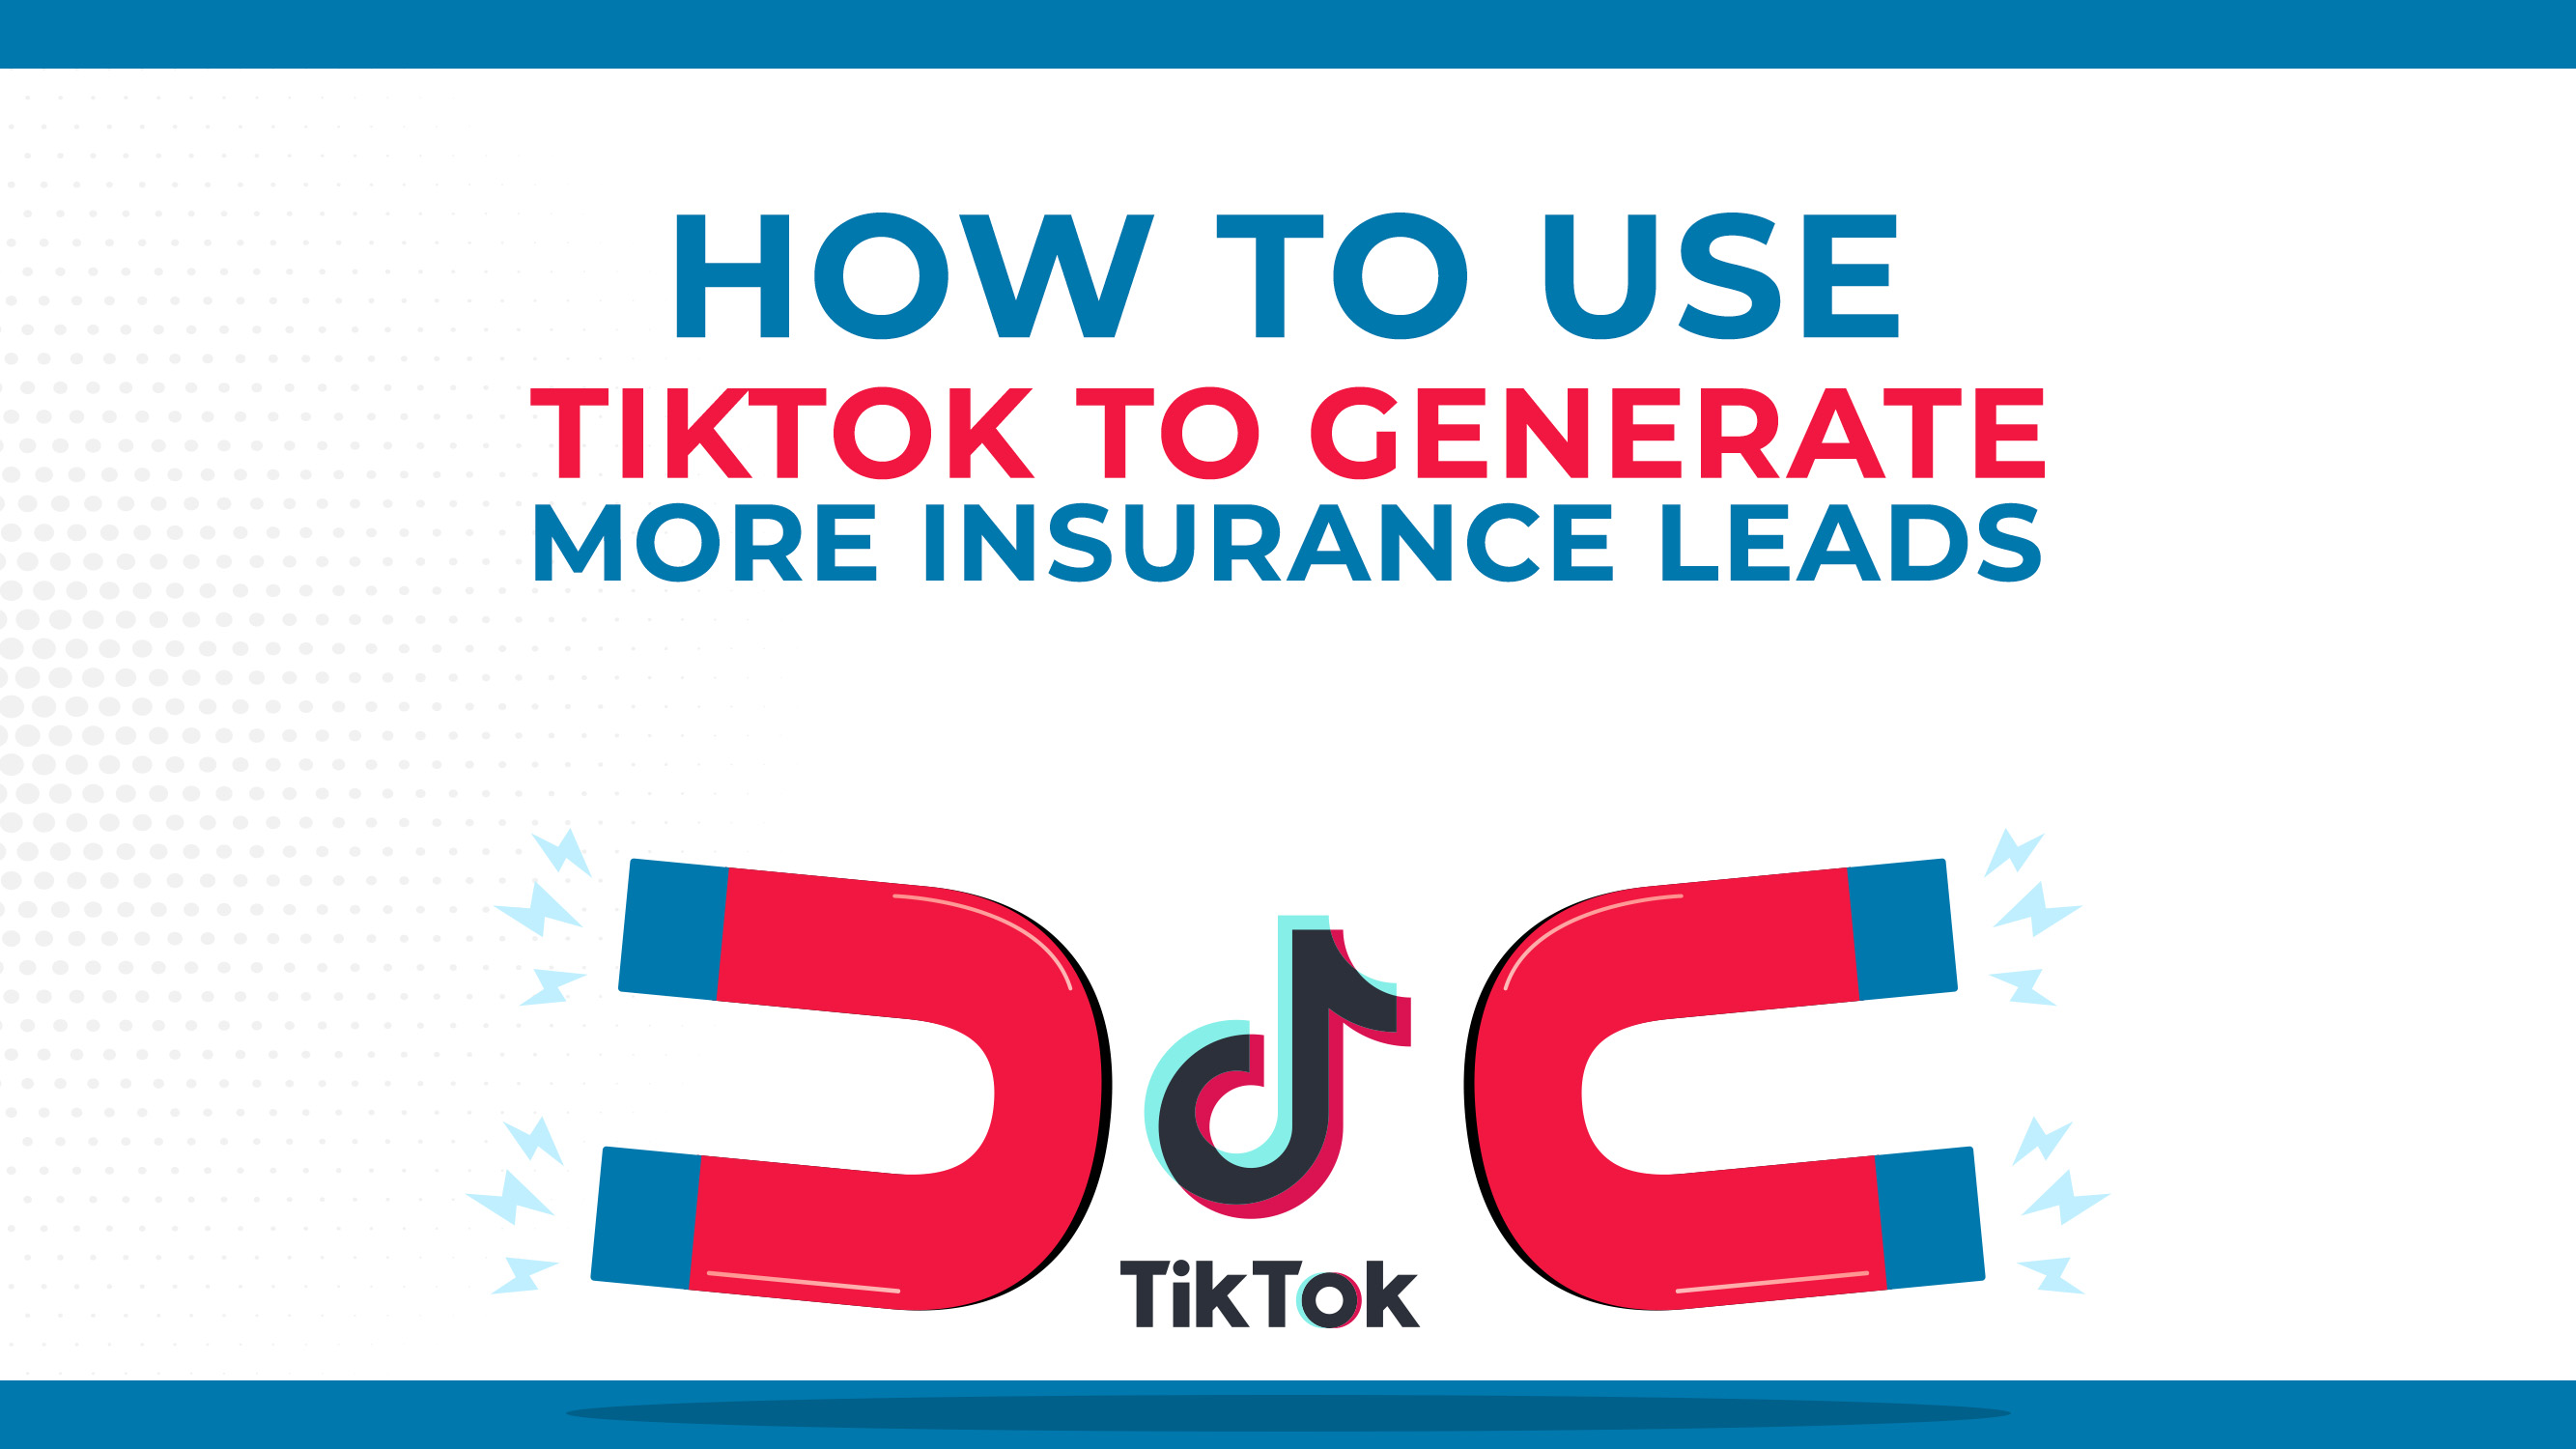 How To Use TikTok To Generate More Insurance Leads